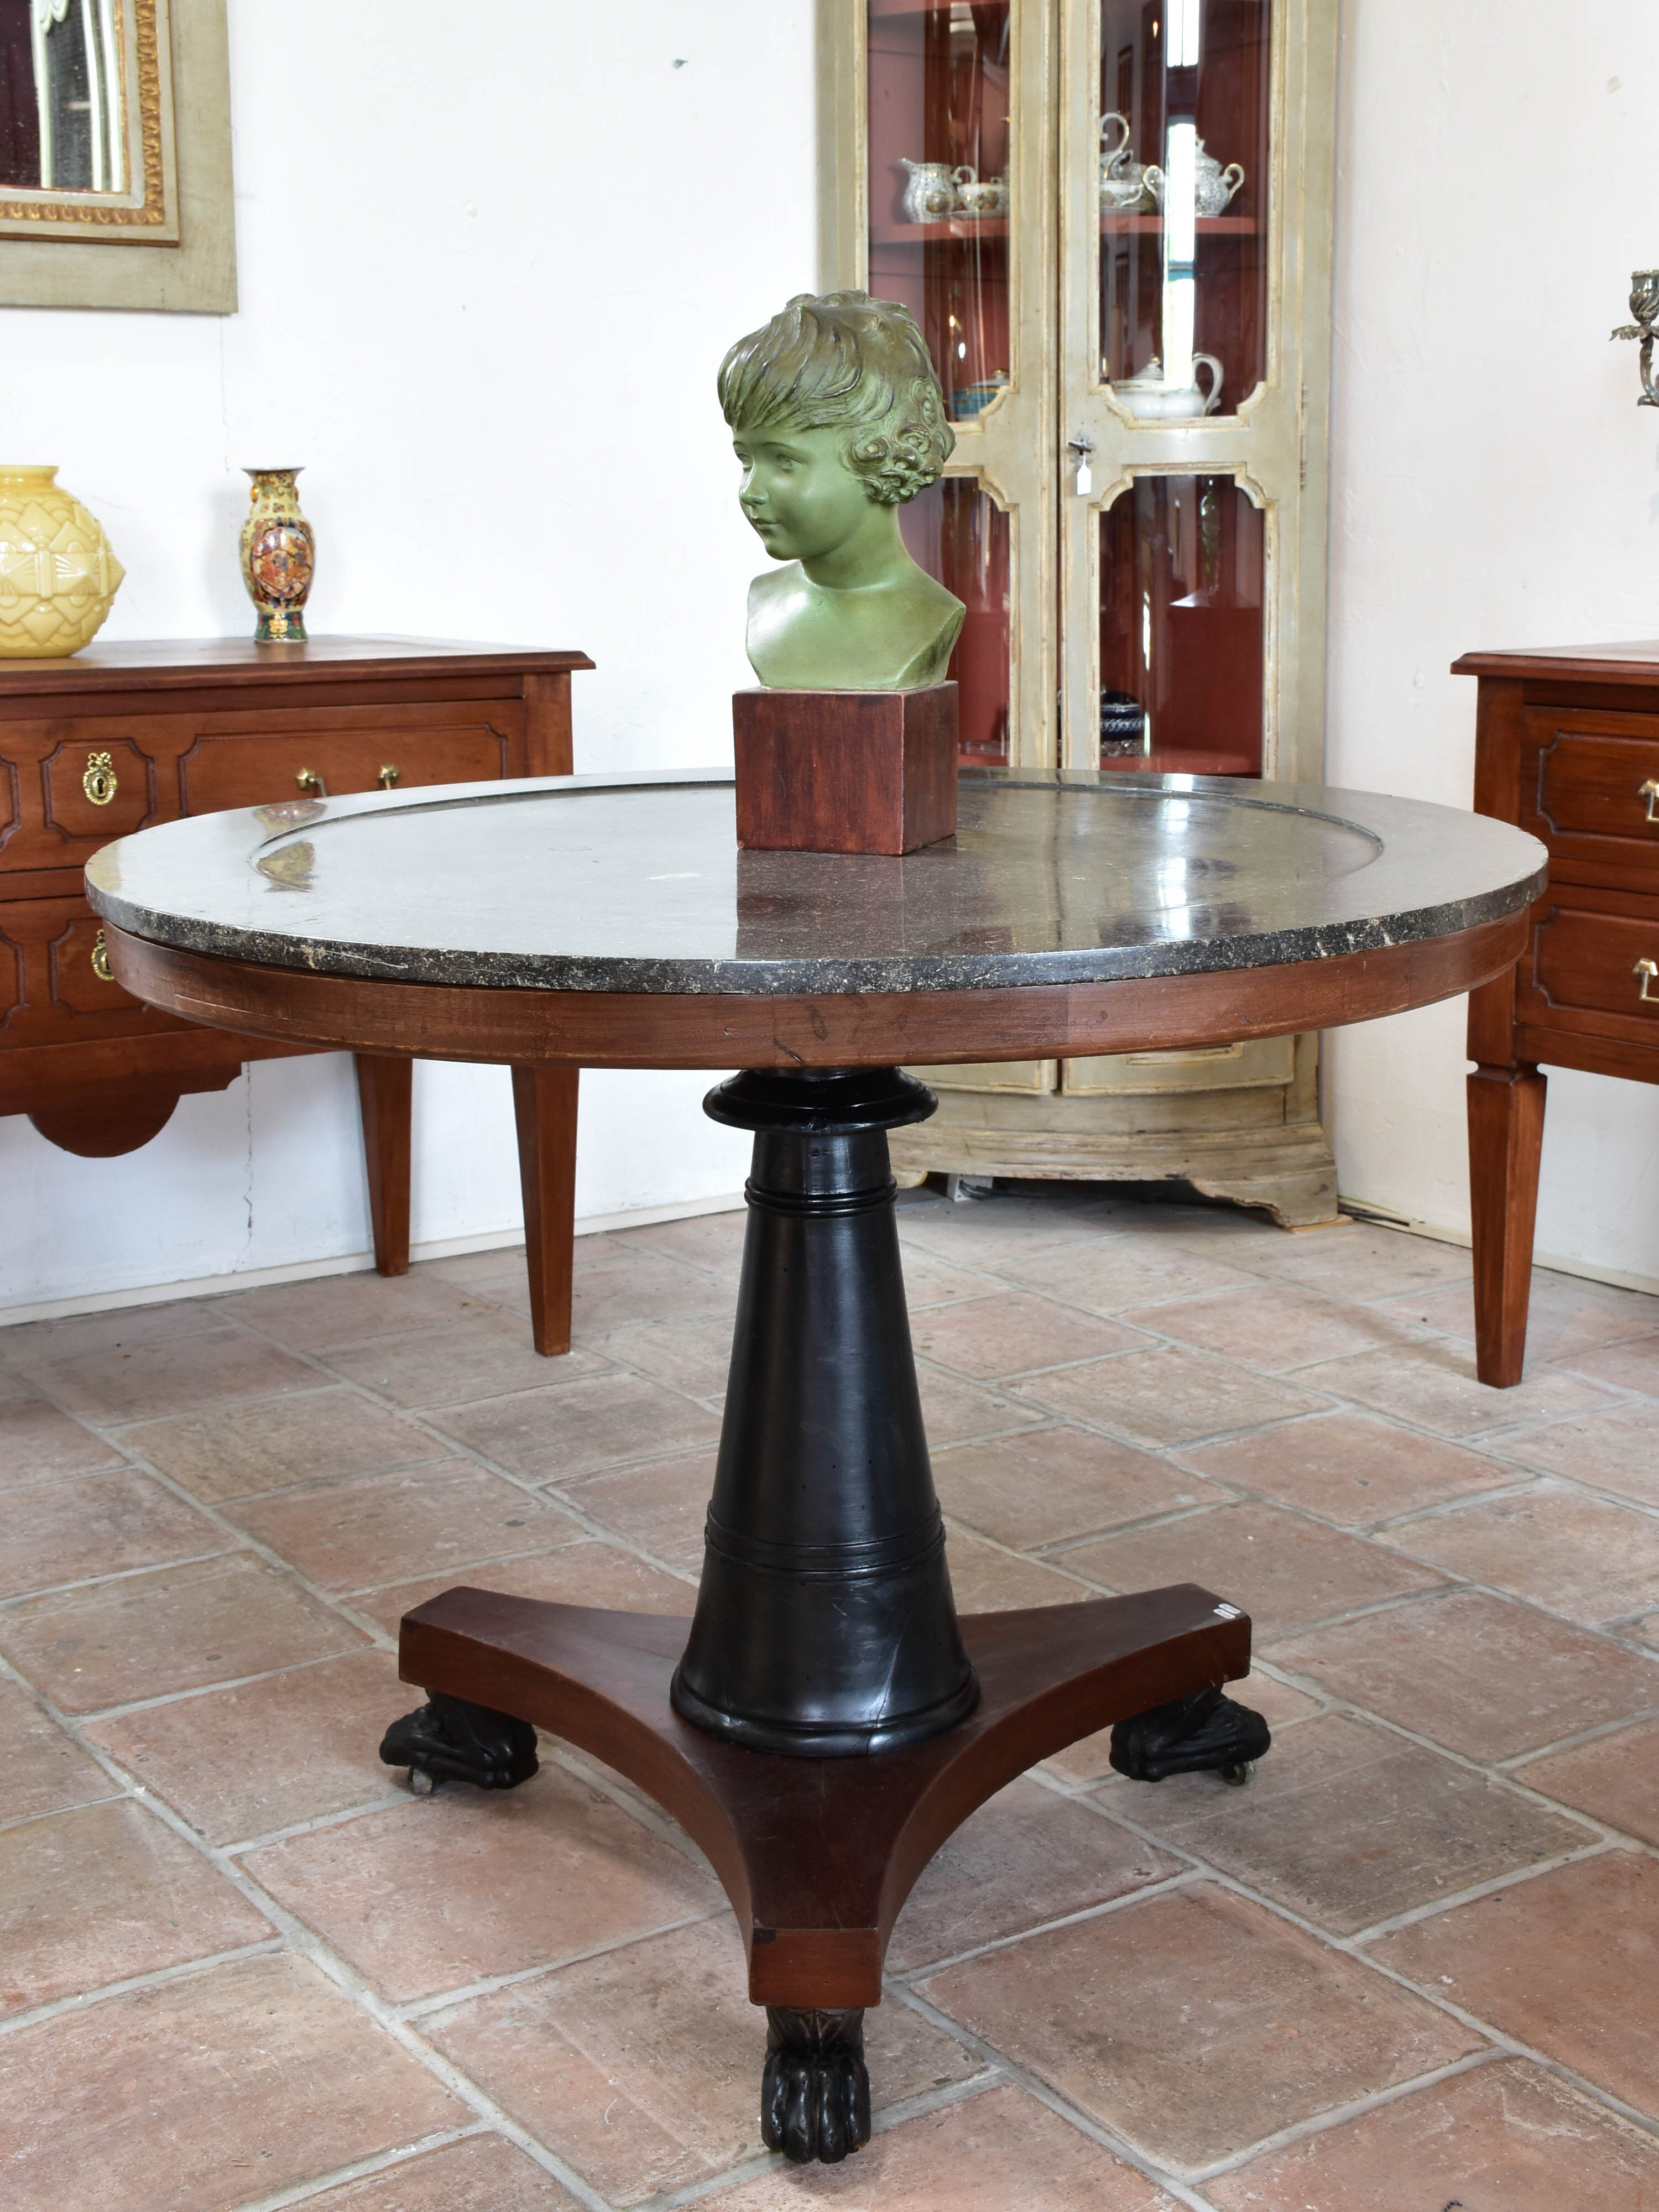 Round French Empire marble and mahogany table